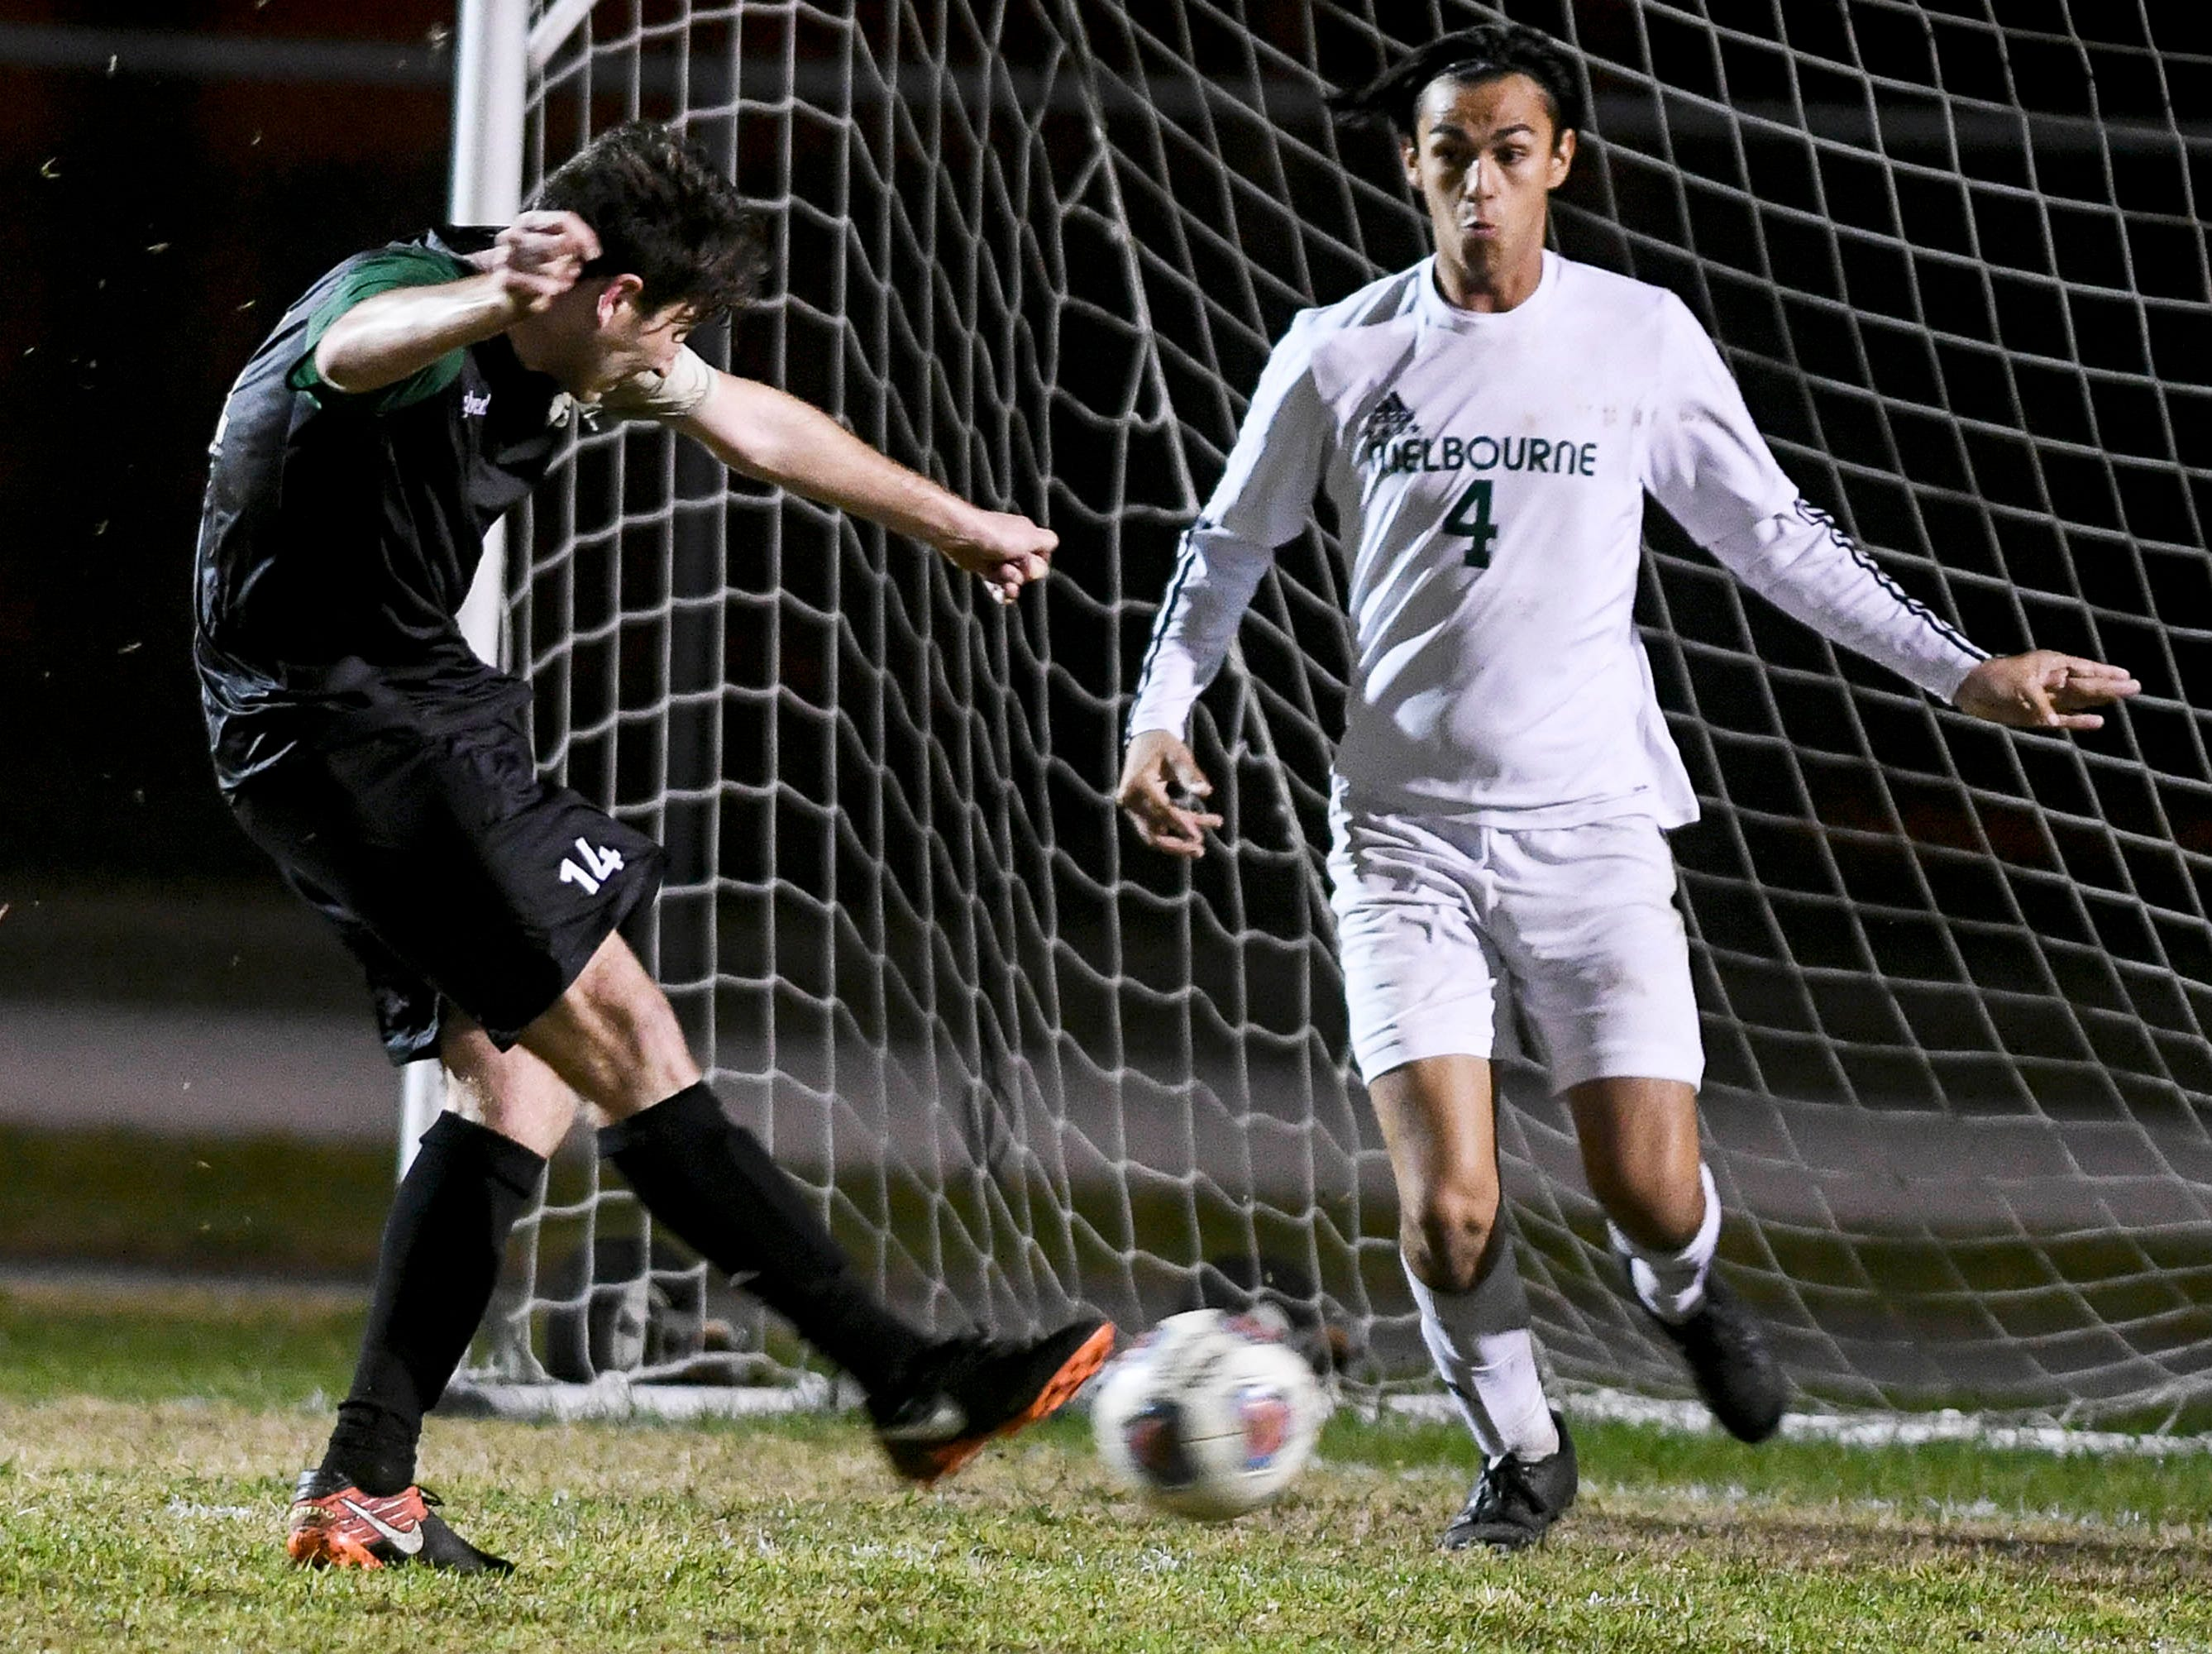 Patrick Murtha of Viera scores a goal during Friday's game against Melbourne.